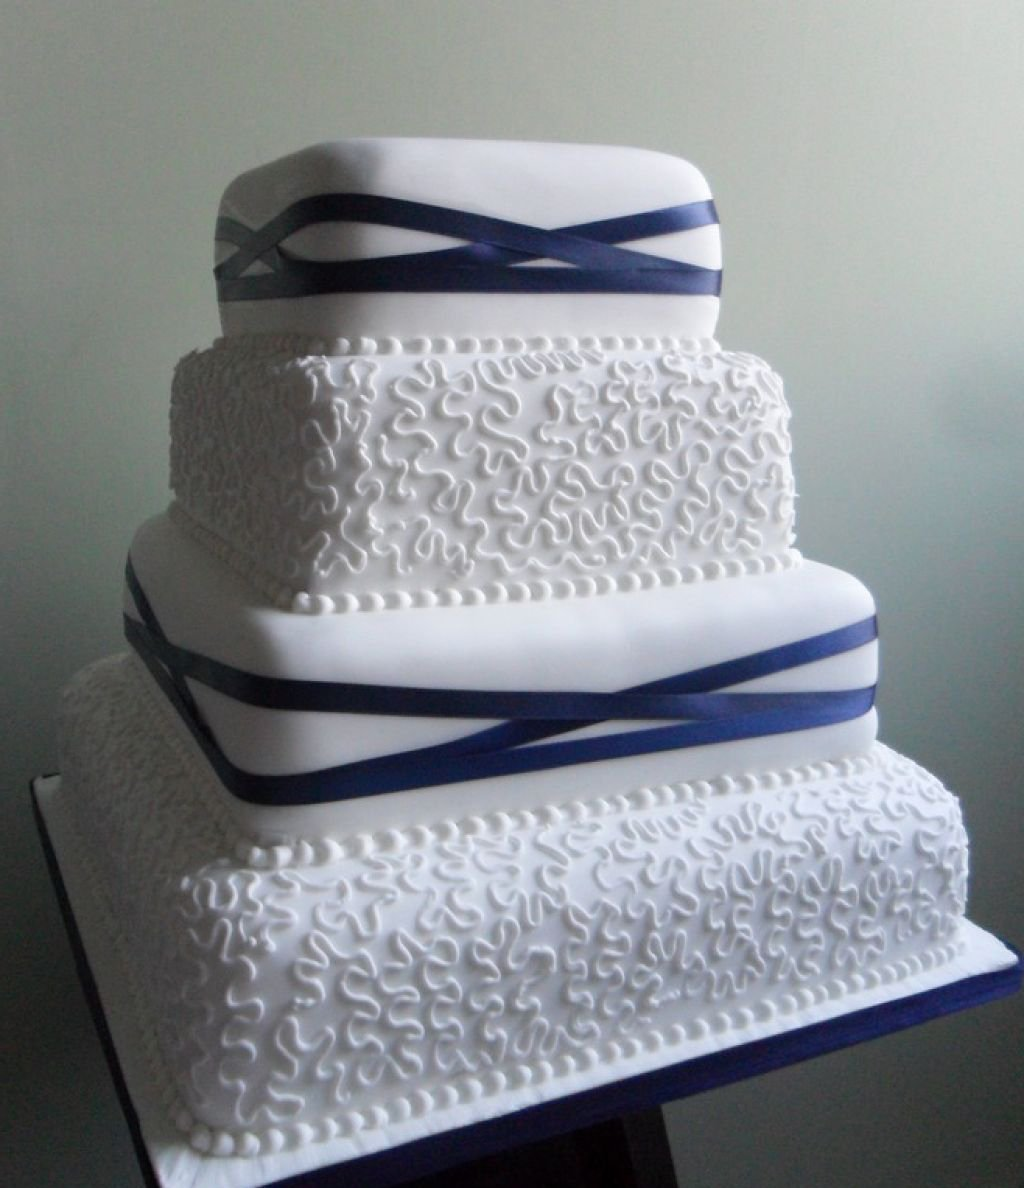 Set of 4 Tier Square Multilayer Birthday Wedding Anniversary Cake Tins/Pans/Mold (Mould) by Hufsy by Protins (Image #1)